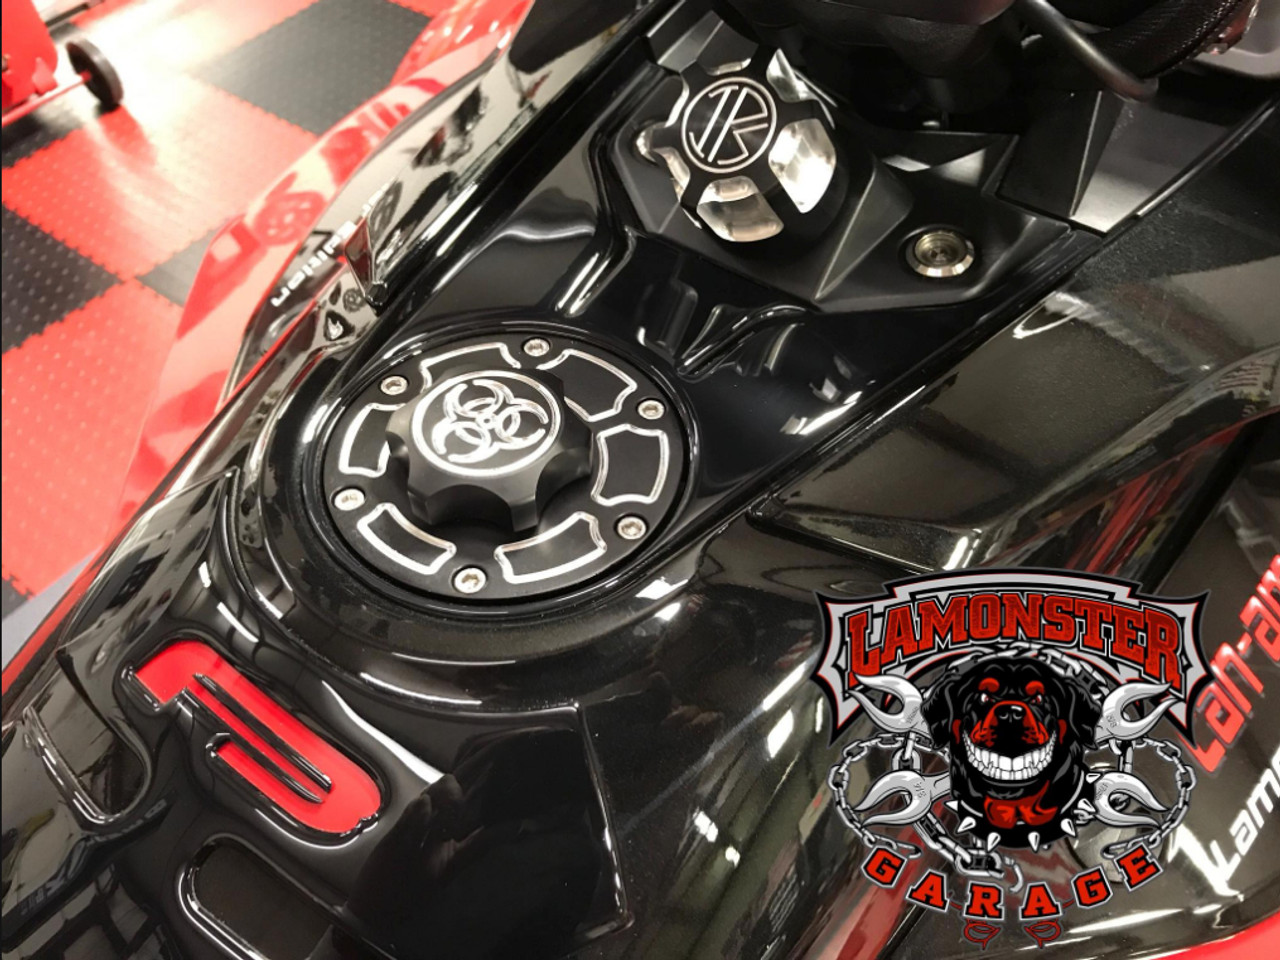 Lamonster IPS F3 Keyless Fuel Cap Assembly (LG-1095A) Fits all Can-Am Spyder F3 Models. F3, F3-S, F3-T, F3-LTD Finish: Accent Cut